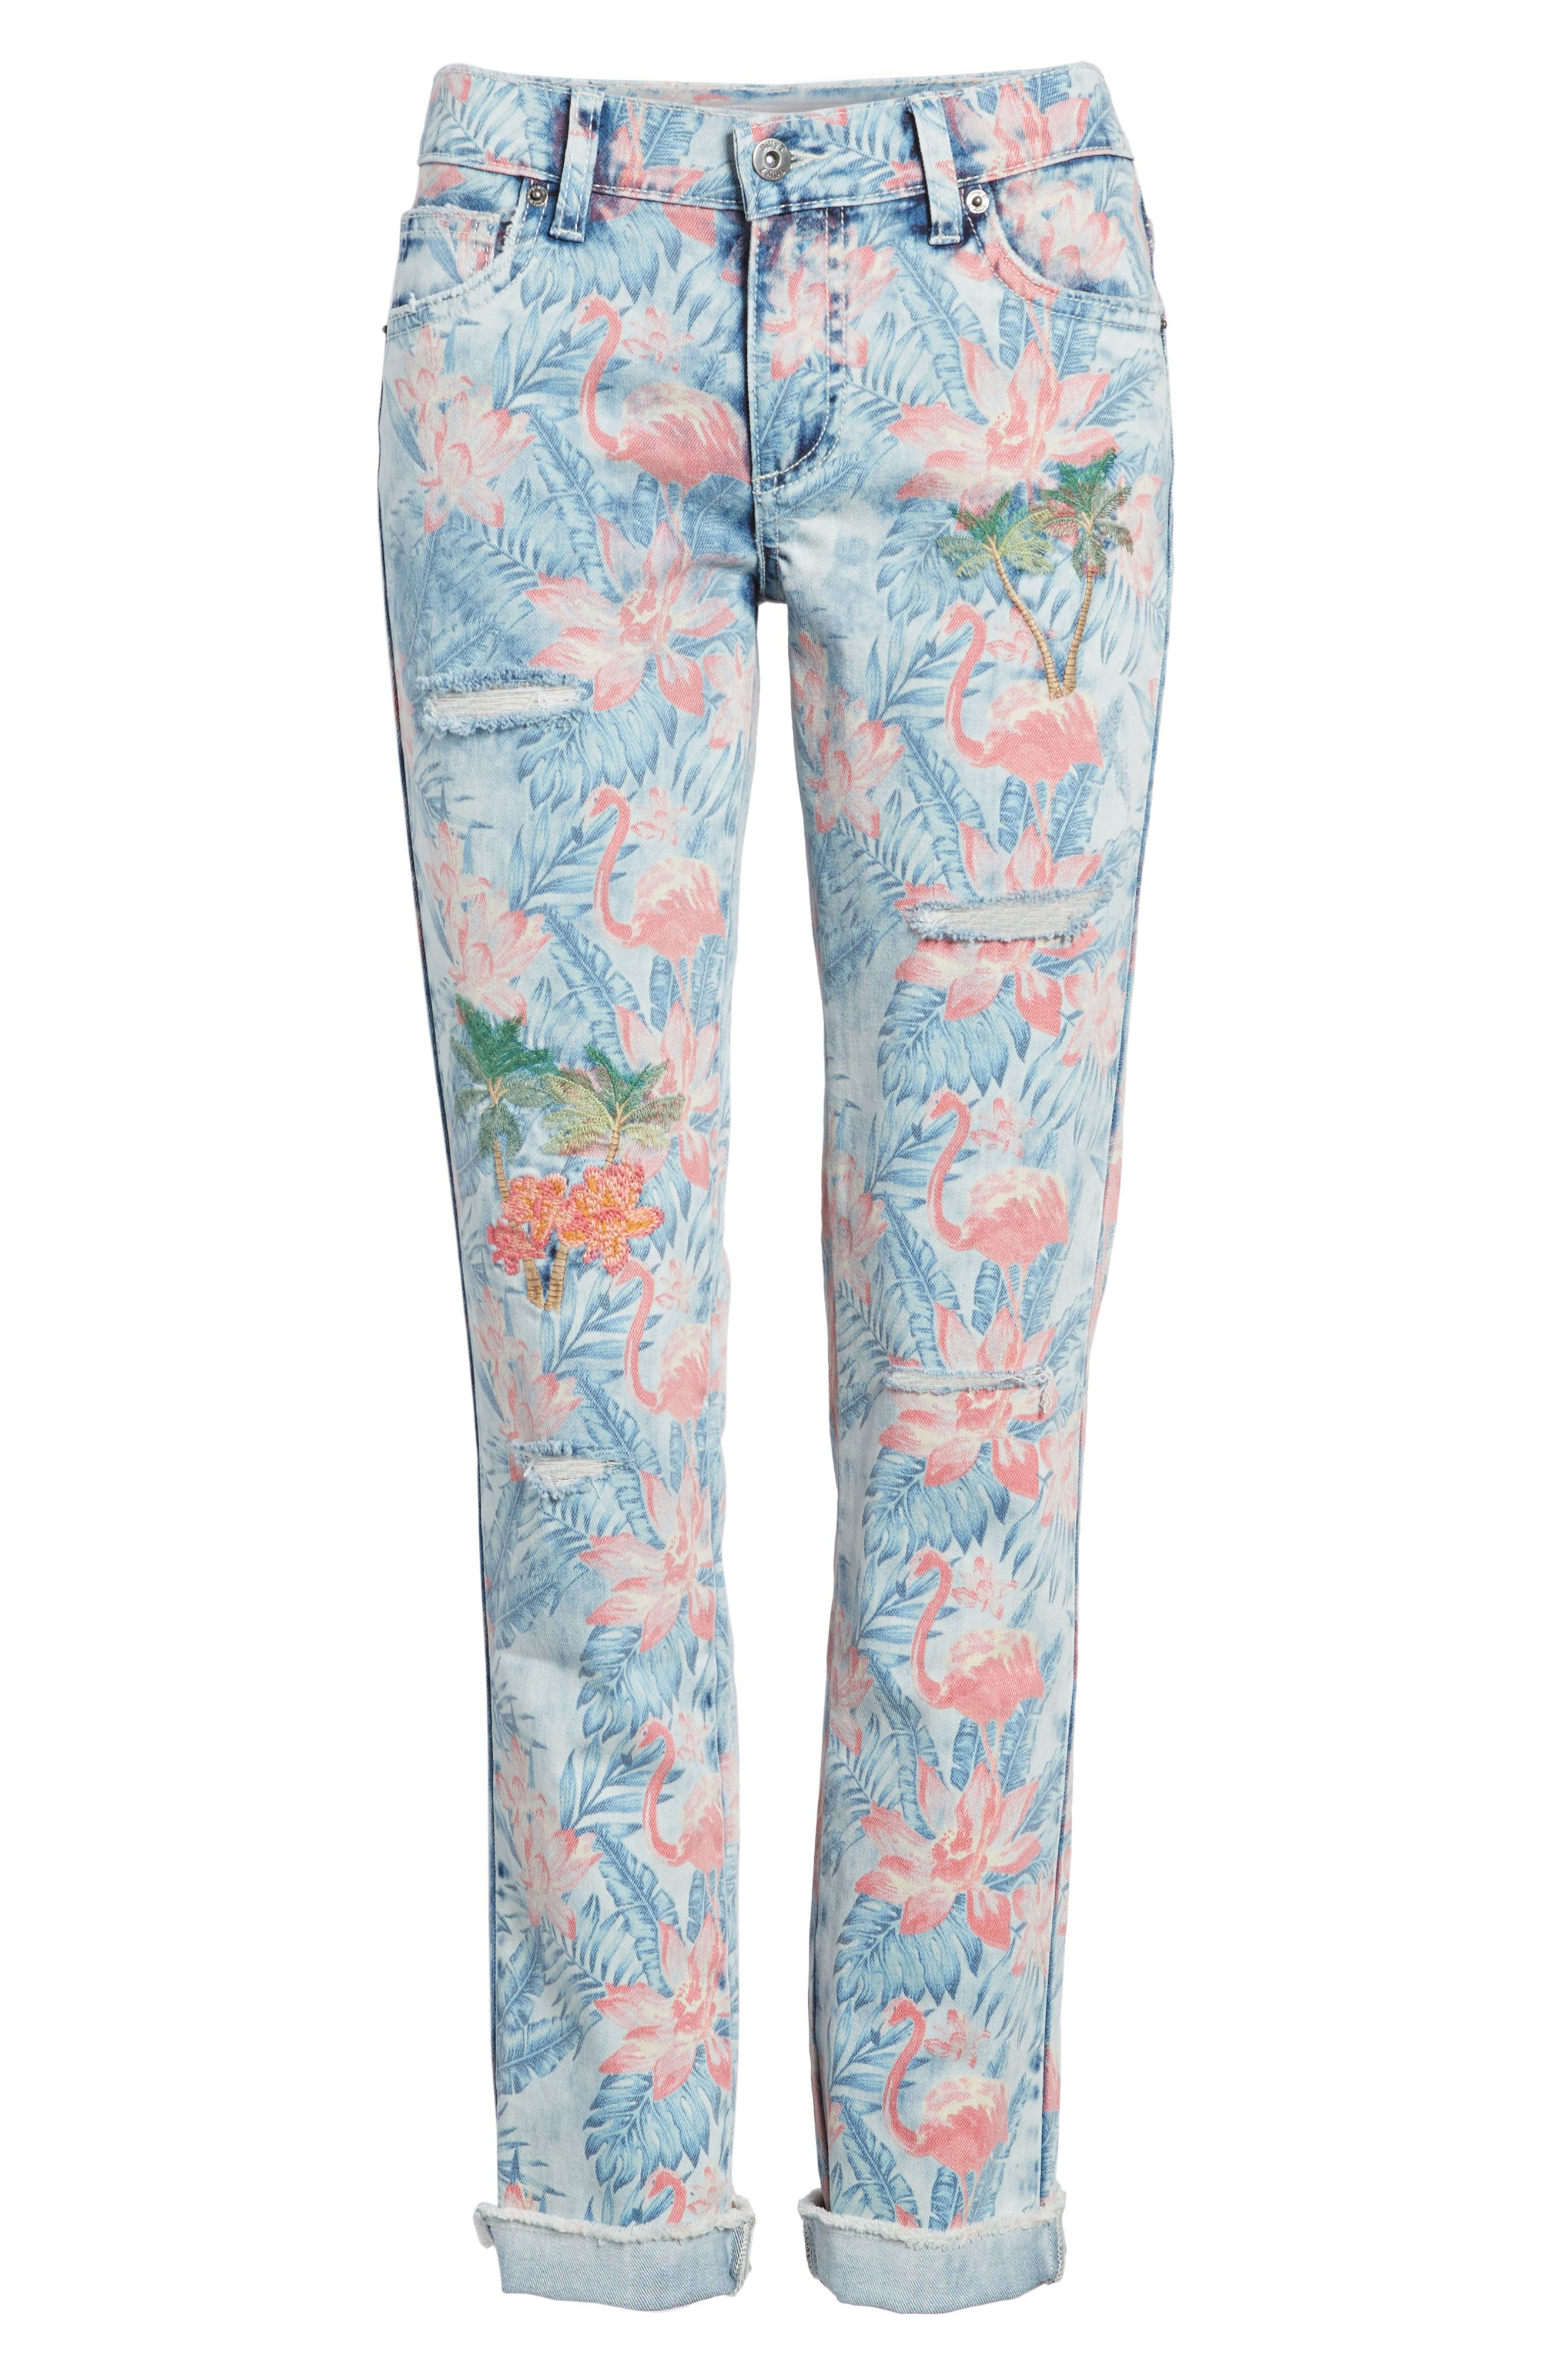 Embroidered Distressed Flamingo Jeans,                             Alternate thumbnail 6, color,                             450